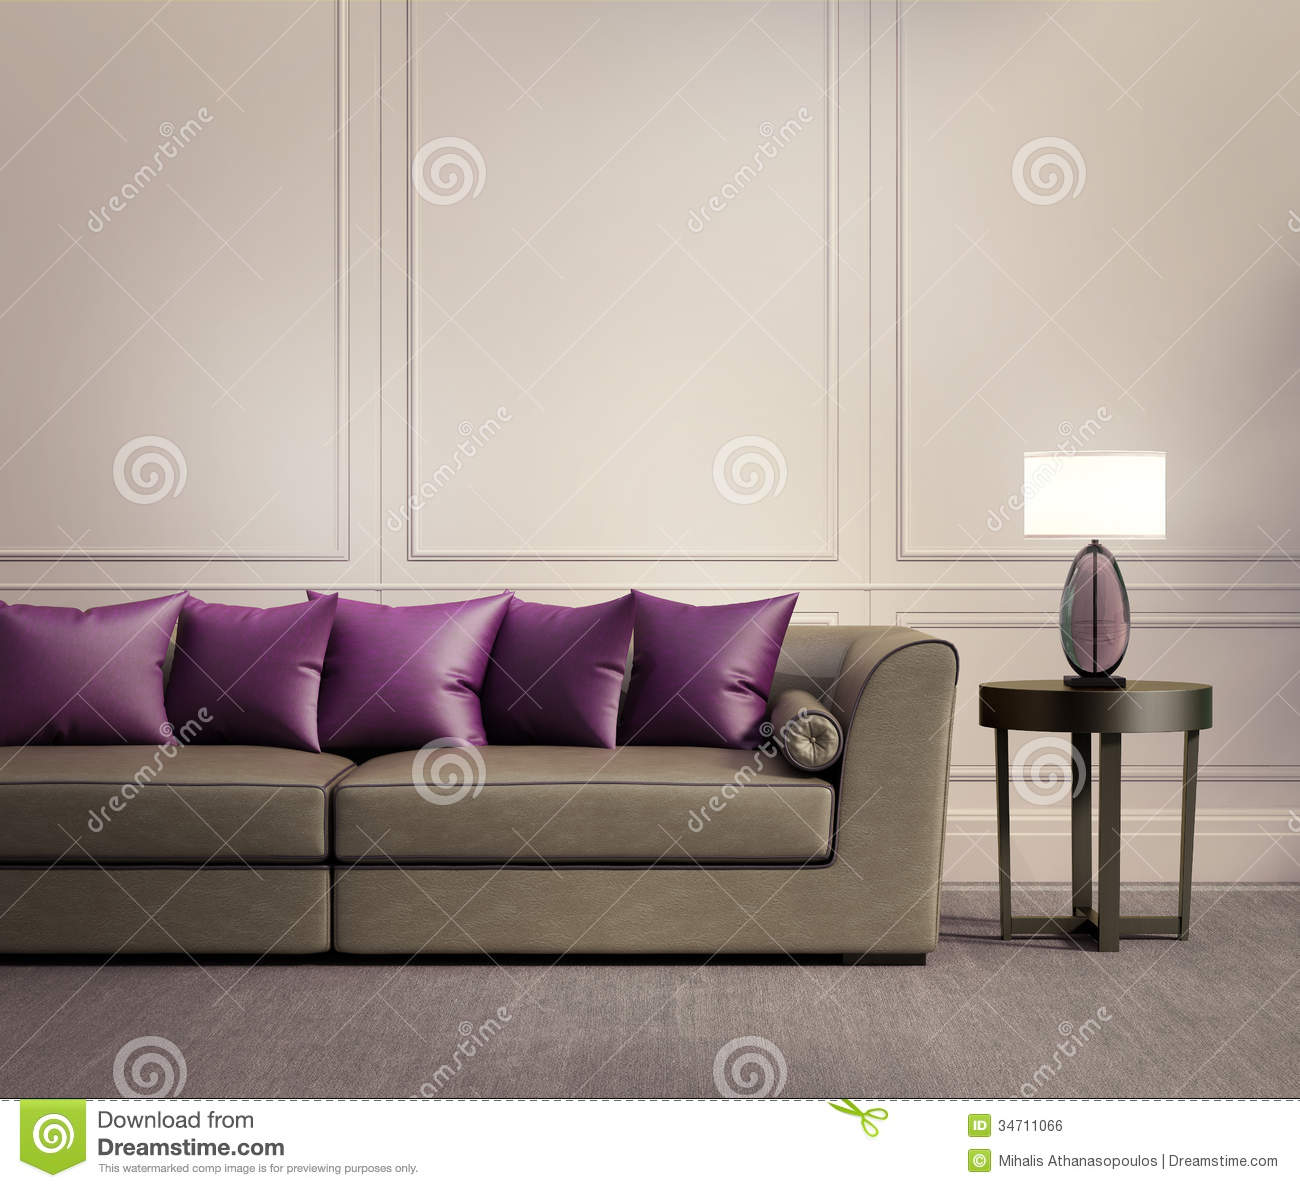 contemporary classic living room beige leather sofa royalty free stock image image 34711066. Black Bedroom Furniture Sets. Home Design Ideas